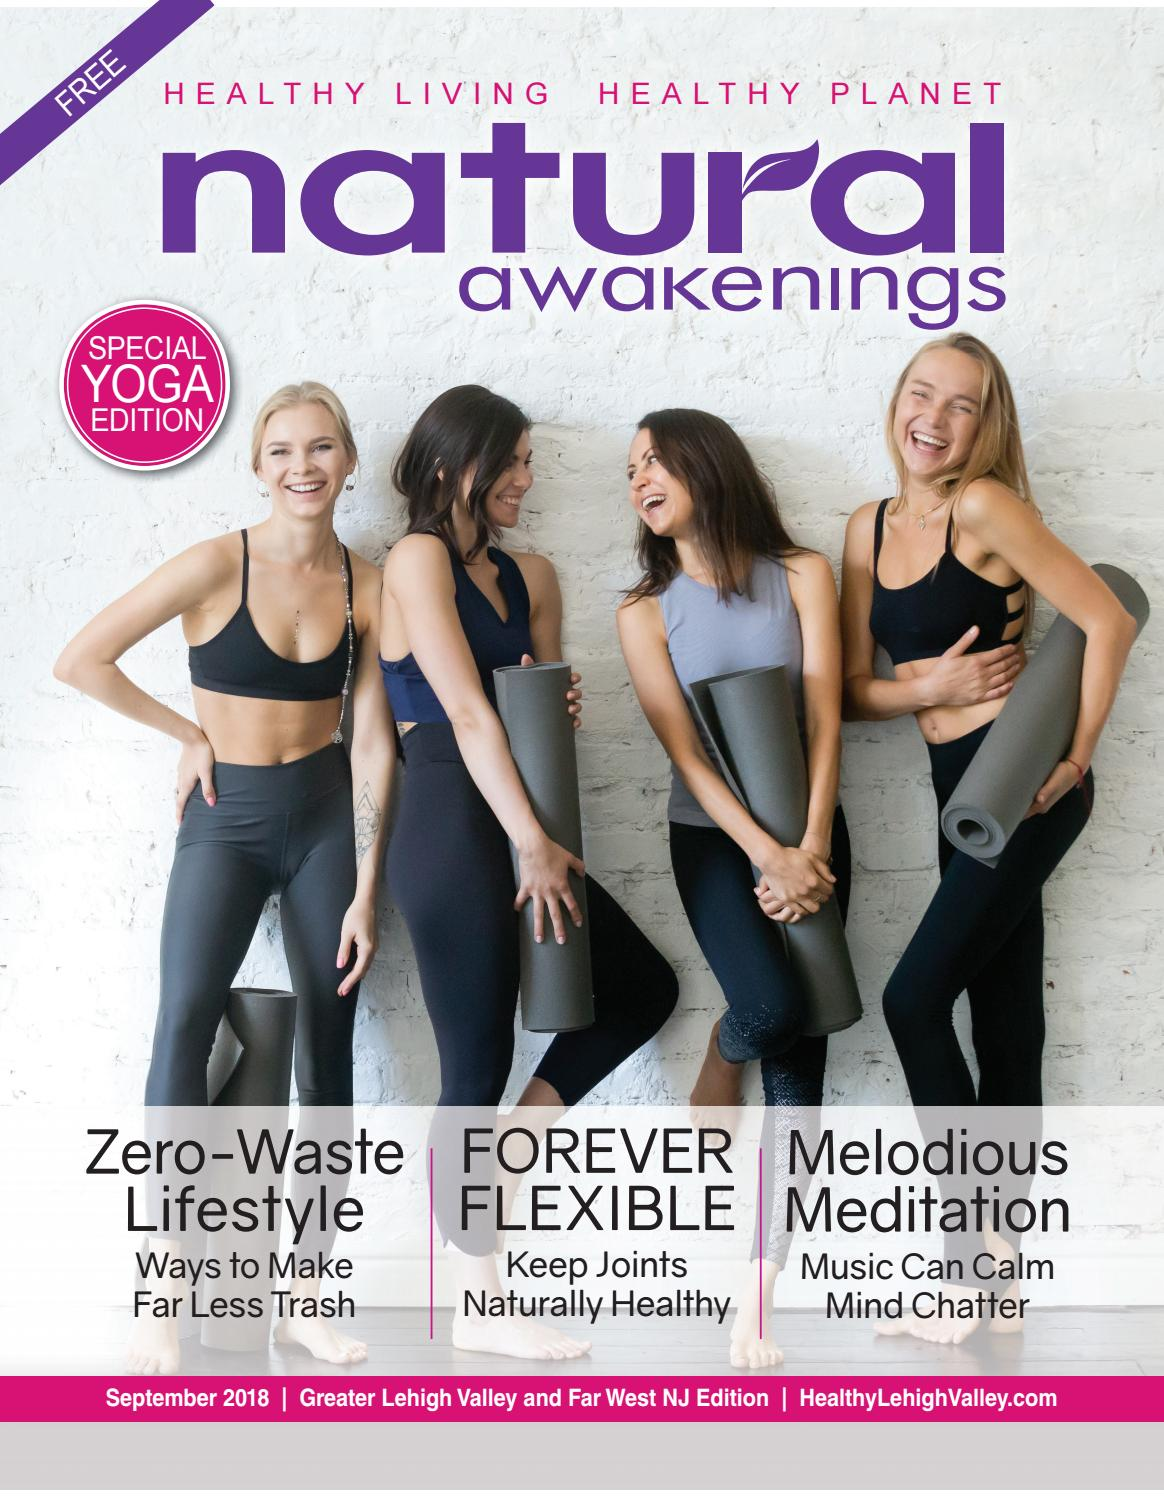 dd4f0d6d585 Natural Awakenings Magazine by Natural Awakenings - Lehigh Valley and  Pocono Editions - issuu